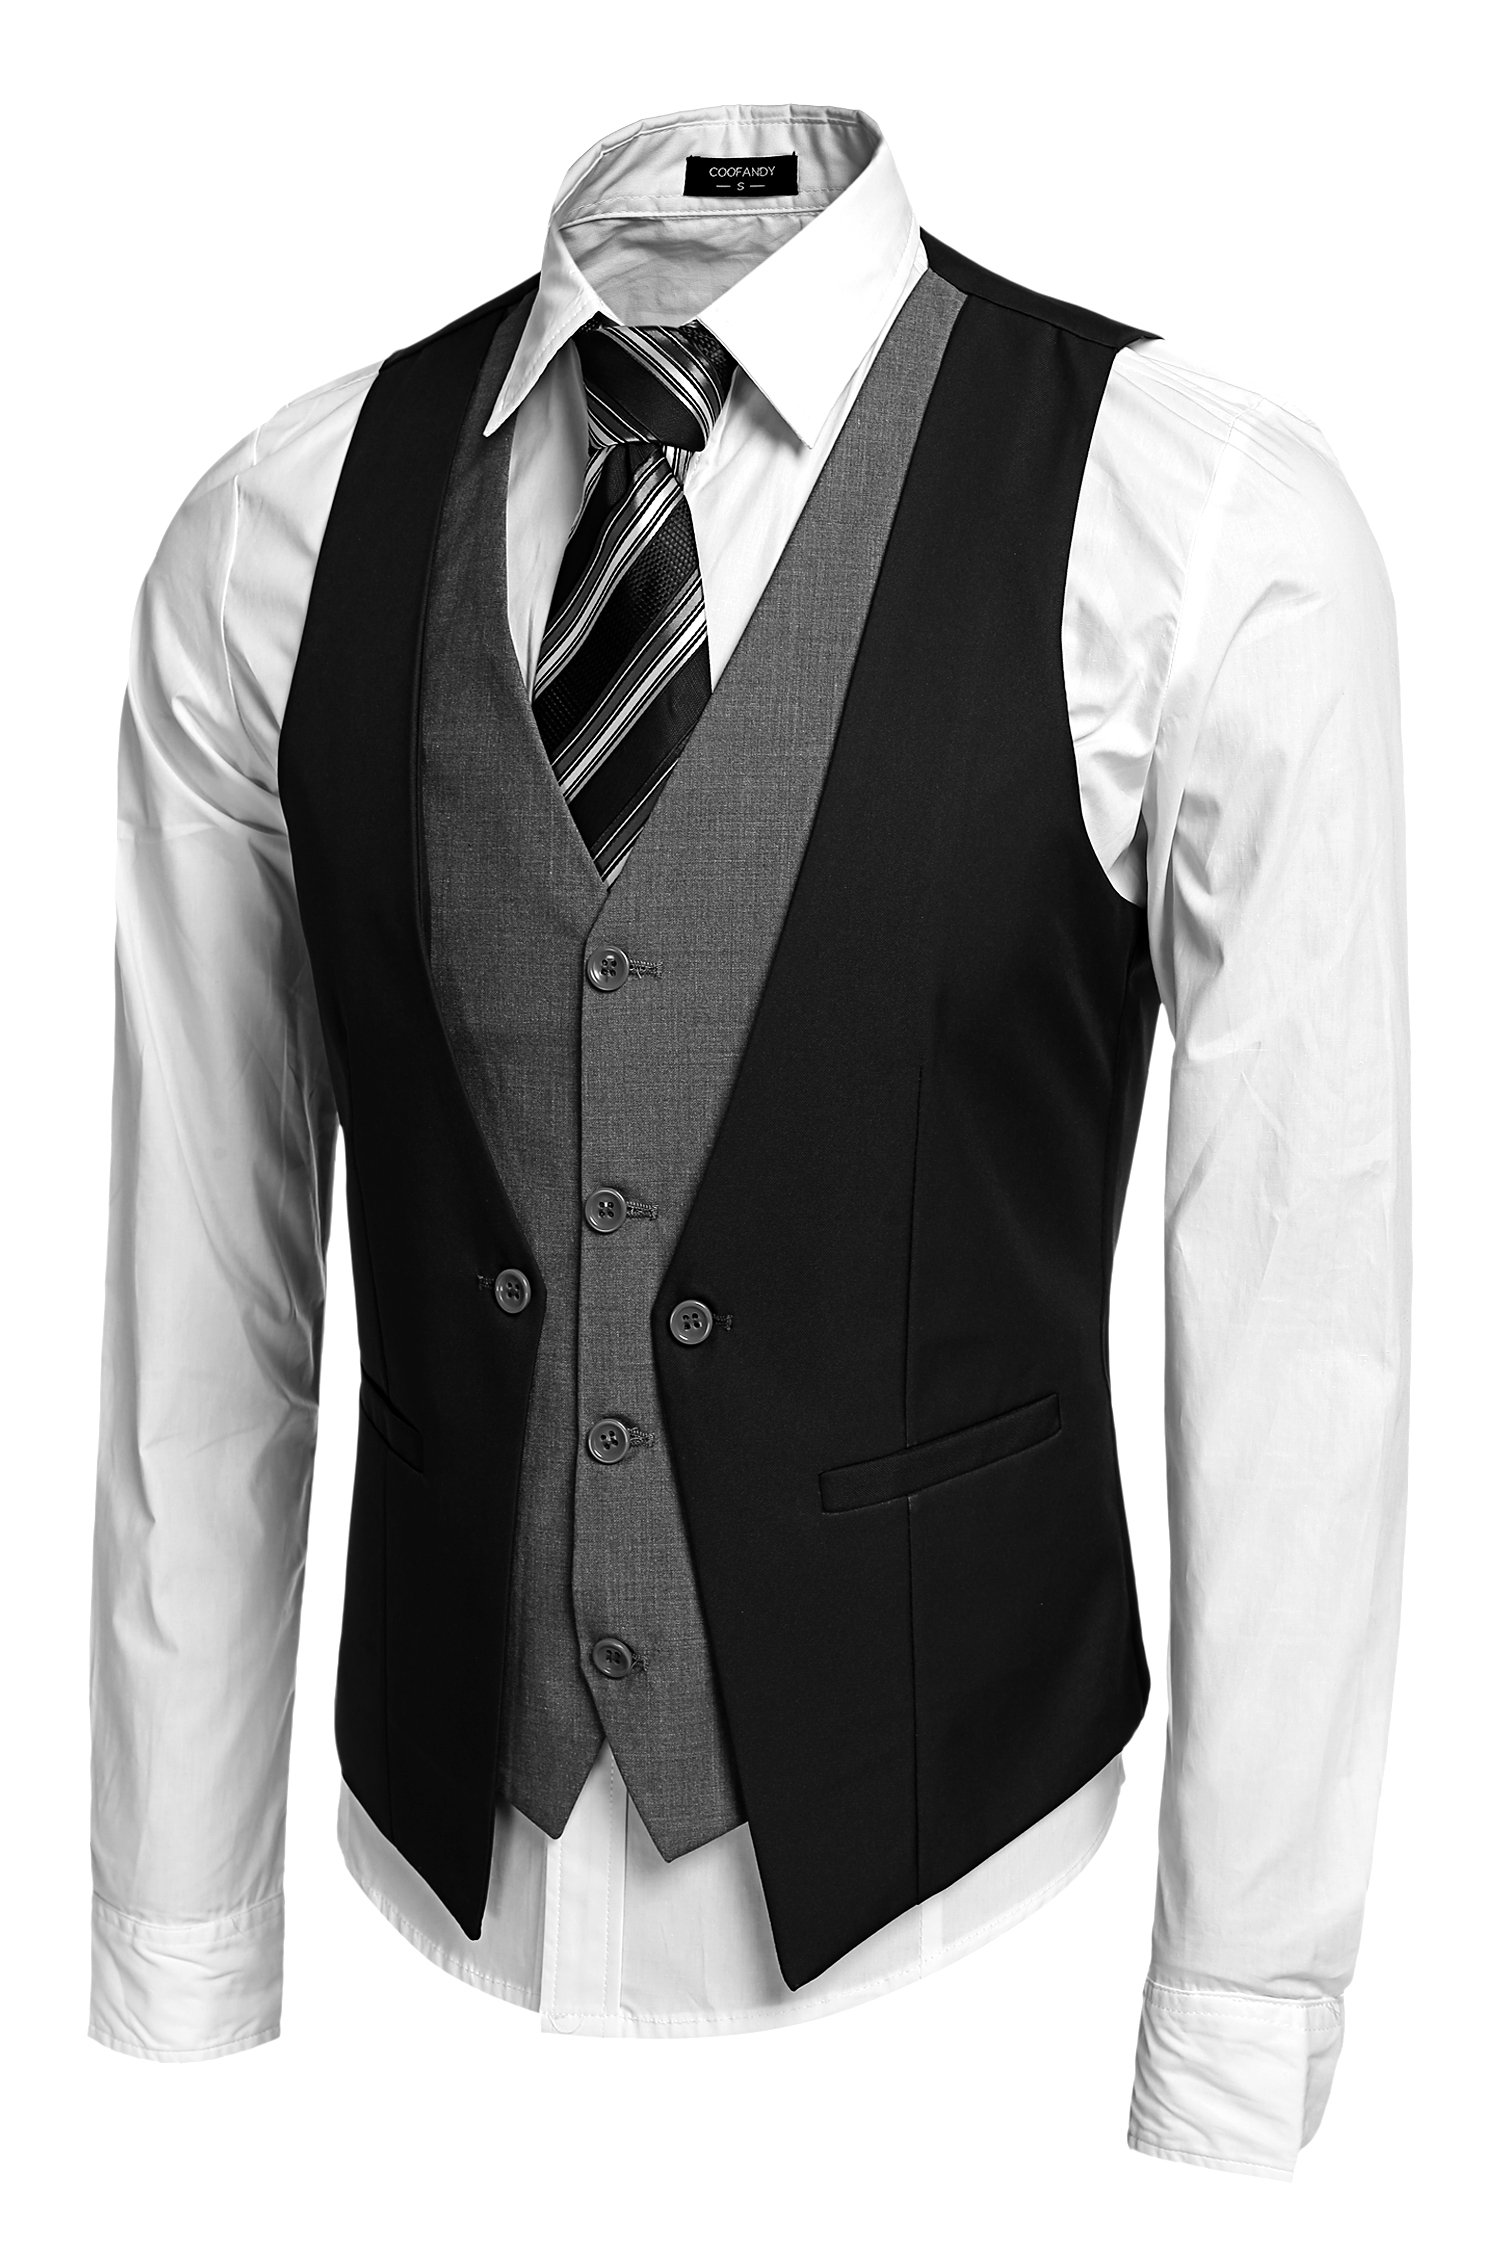 Coofandy Men's V-neck Sleeveless Slim Fit Jacket Business Suit Vests Black Medium by Zeagoo